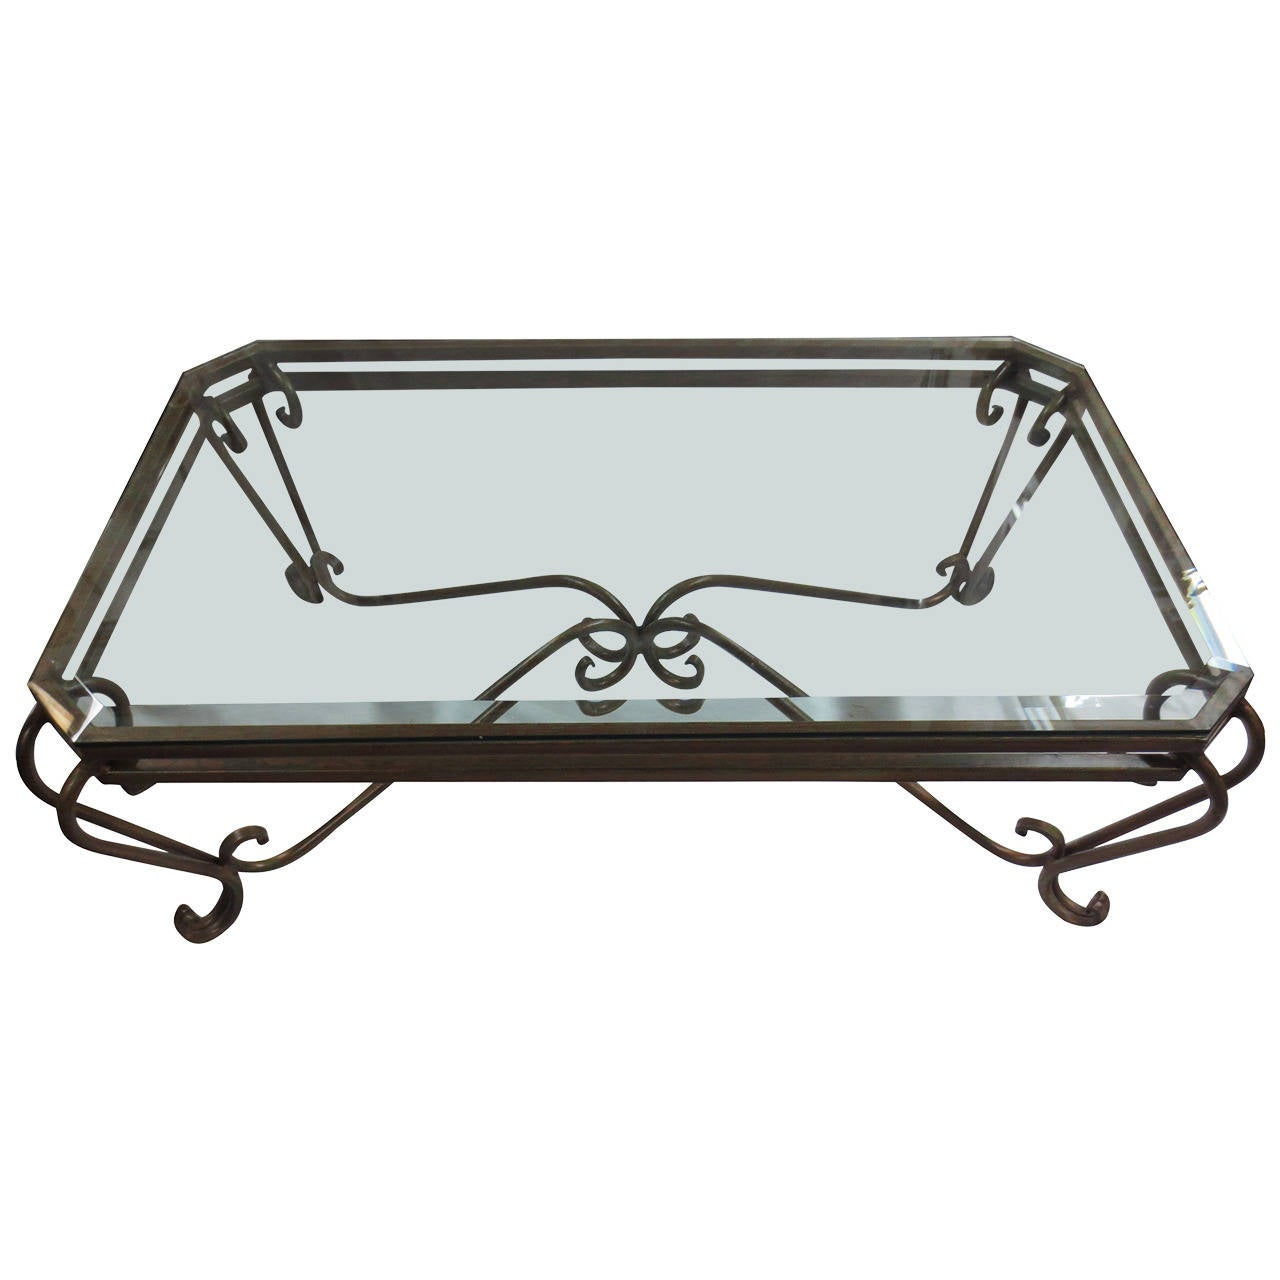 Hollywood Glam Wrought Iron And Glass Coffee Table At 1stdibs